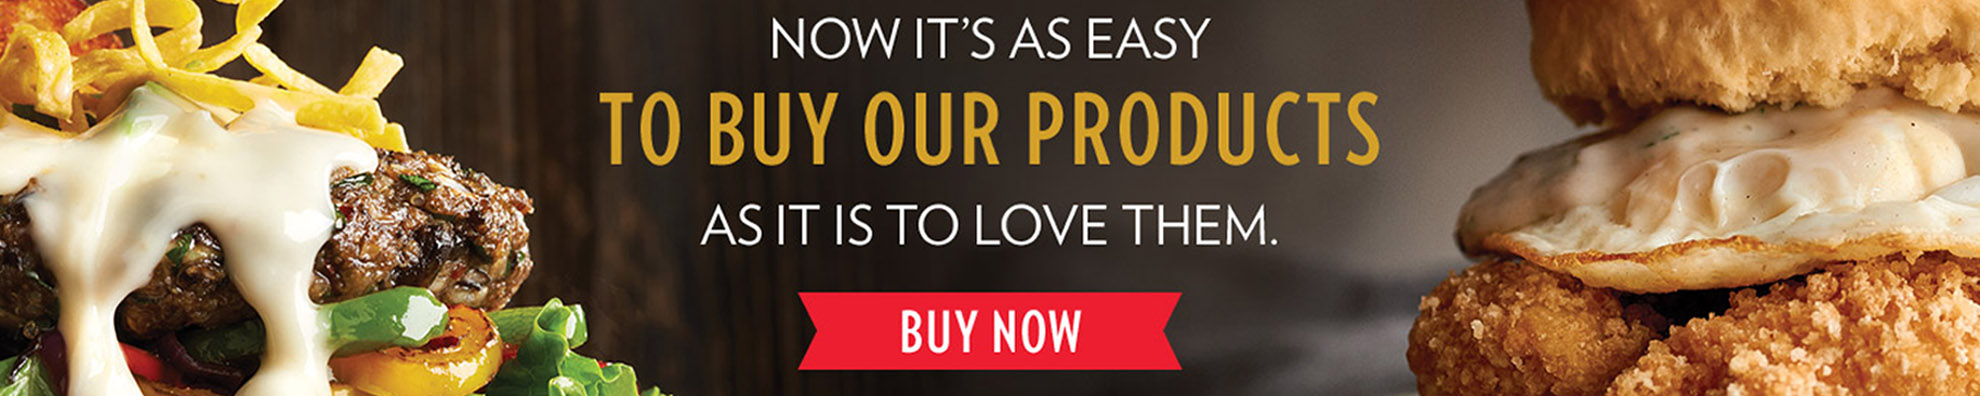 Nestle It's As Easy to Buy Our Products As It Is to Love Them - banner - both - 06.18